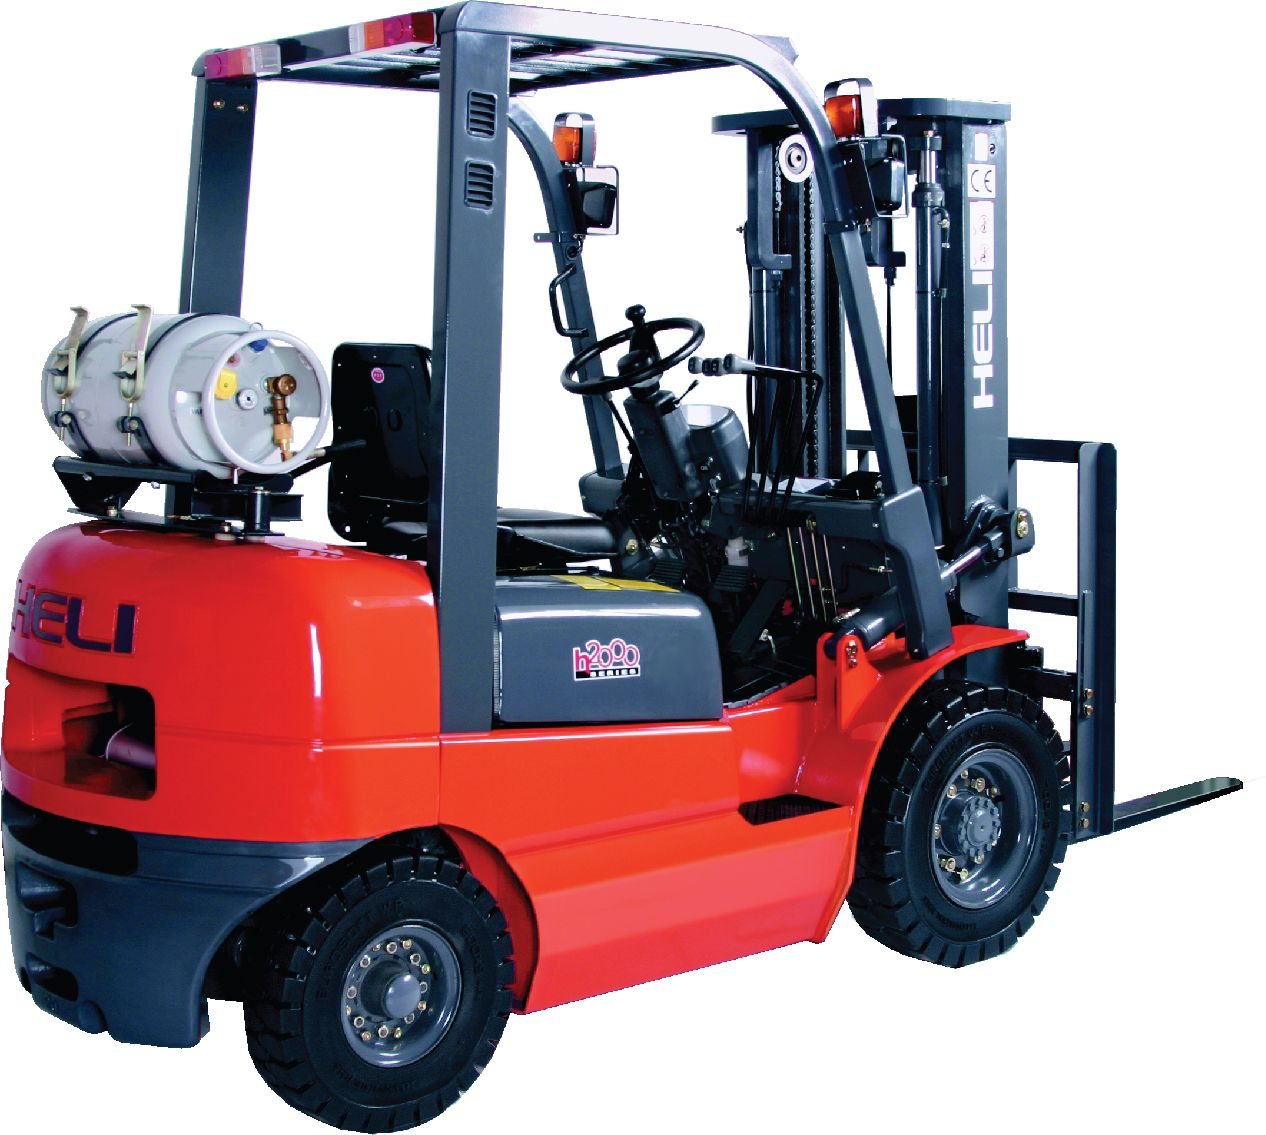 Forklift looking for affordable machinery check out our best complete lift offers forklift services repairs maintenance parts and certification 1betcityfo Choice Image